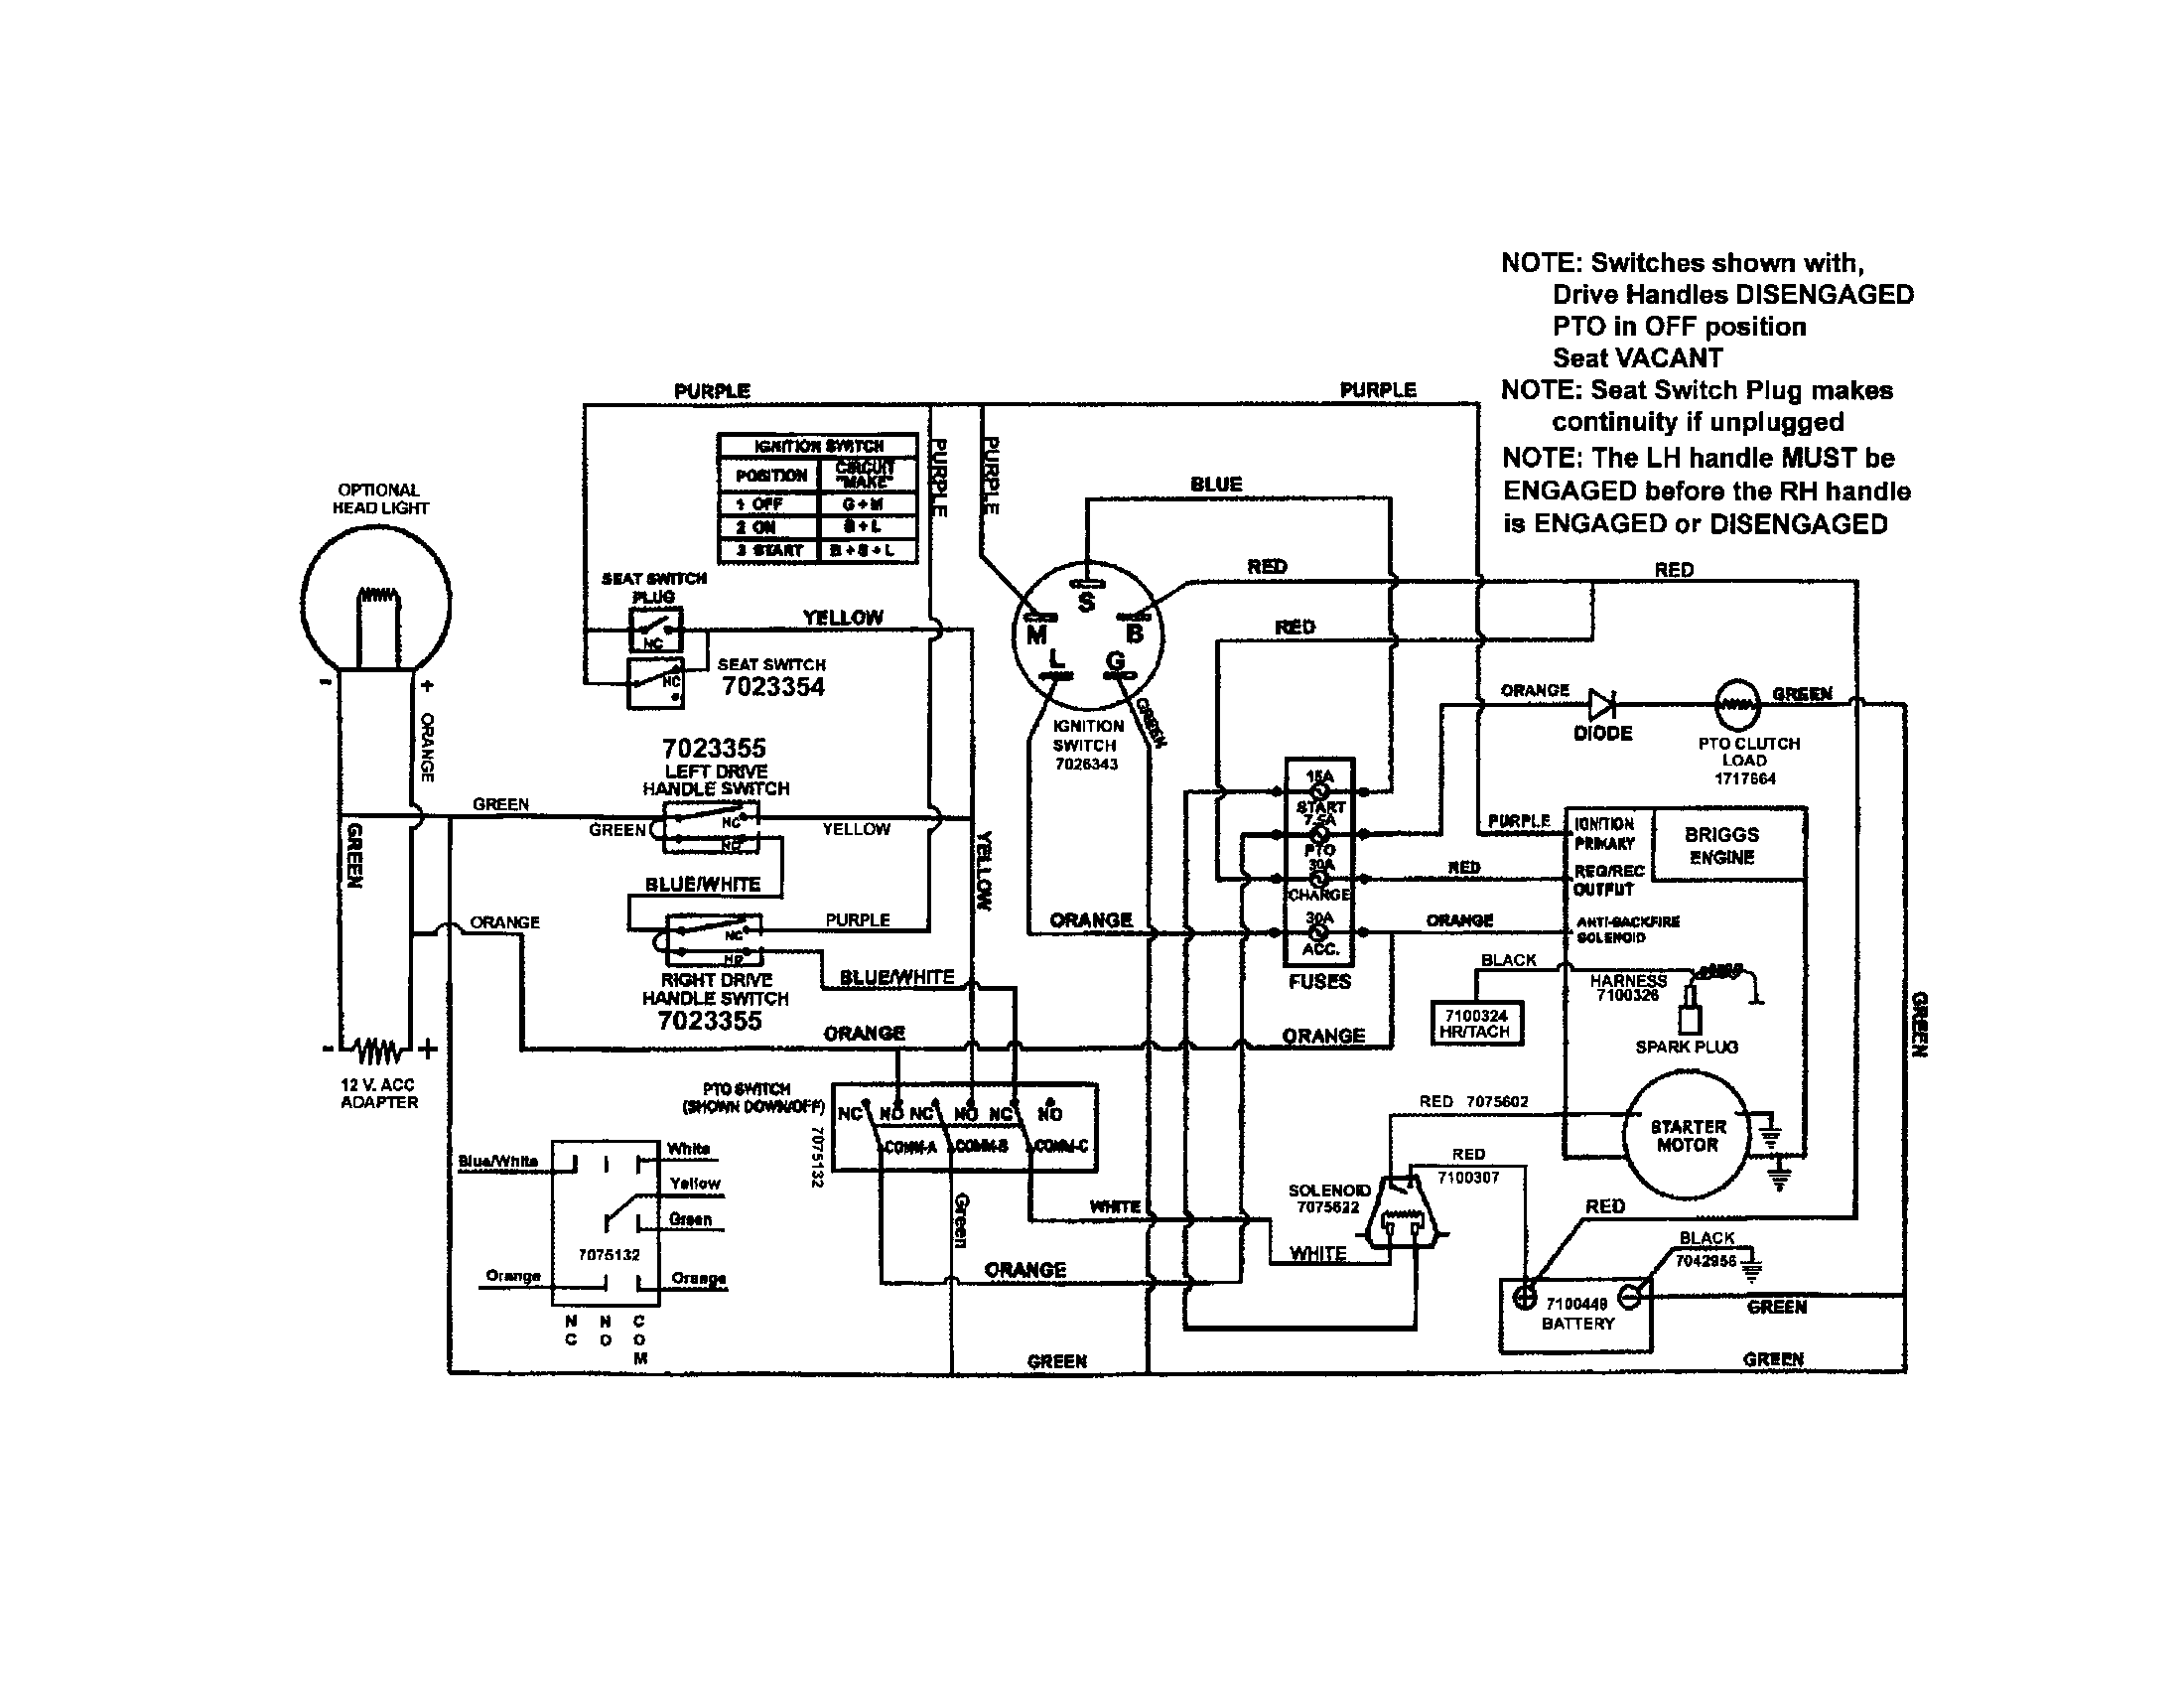 scotts s1642 lawn mower wiring diagram free download image 2